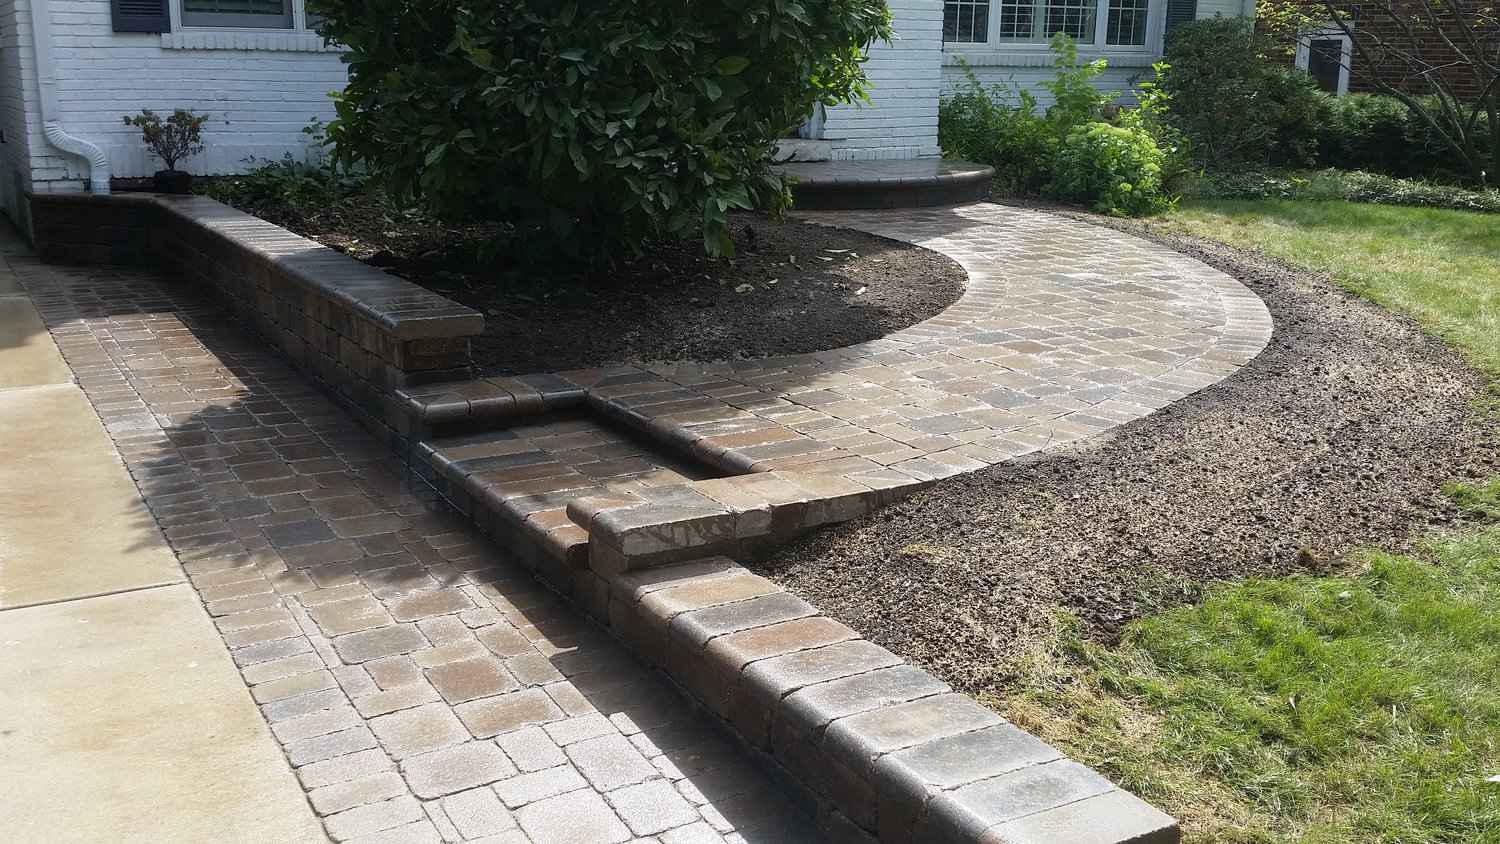 Lakeport-Longview TX Professional Landscapers & Outdoor Living Designs-We offer Landscape Design, Outdoor Patios & Pergolas, Outdoor Living Spaces, Stonescapes, Residential & Commercial Landscaping, Irrigation Installation & Repairs, Drainage Systems, Landscape Lighting, Outdoor Living Spaces, Tree Service, Lawn Service, and more.